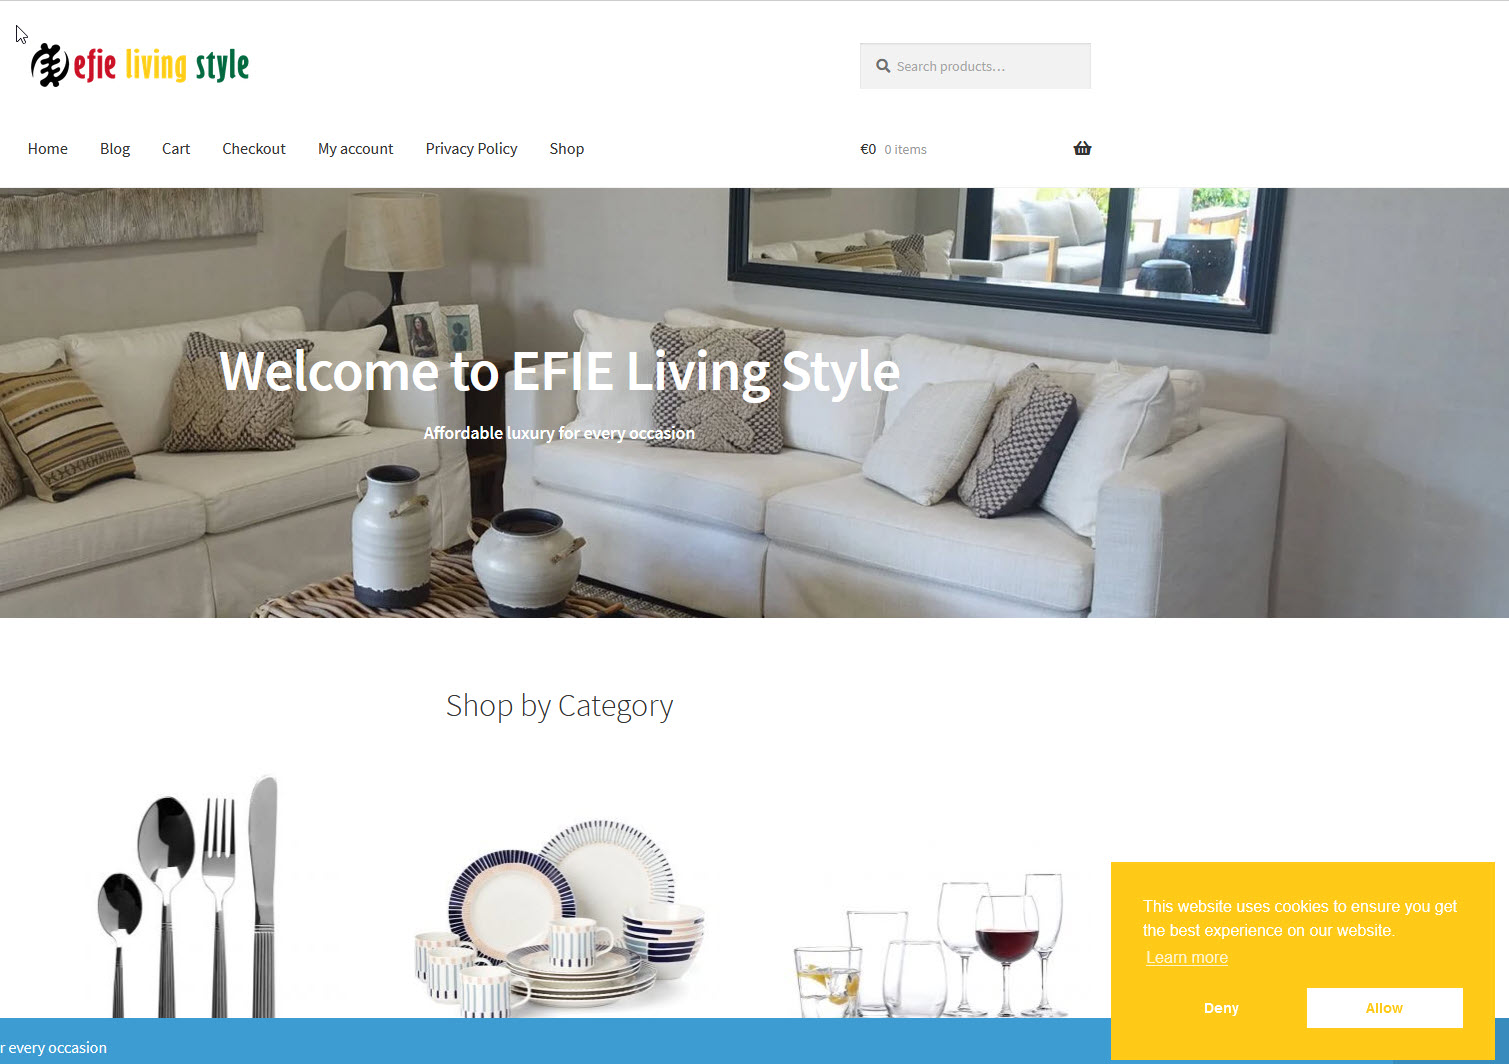 WebWab - EFIE LIVING STYLE - affordable luxury for every occasion